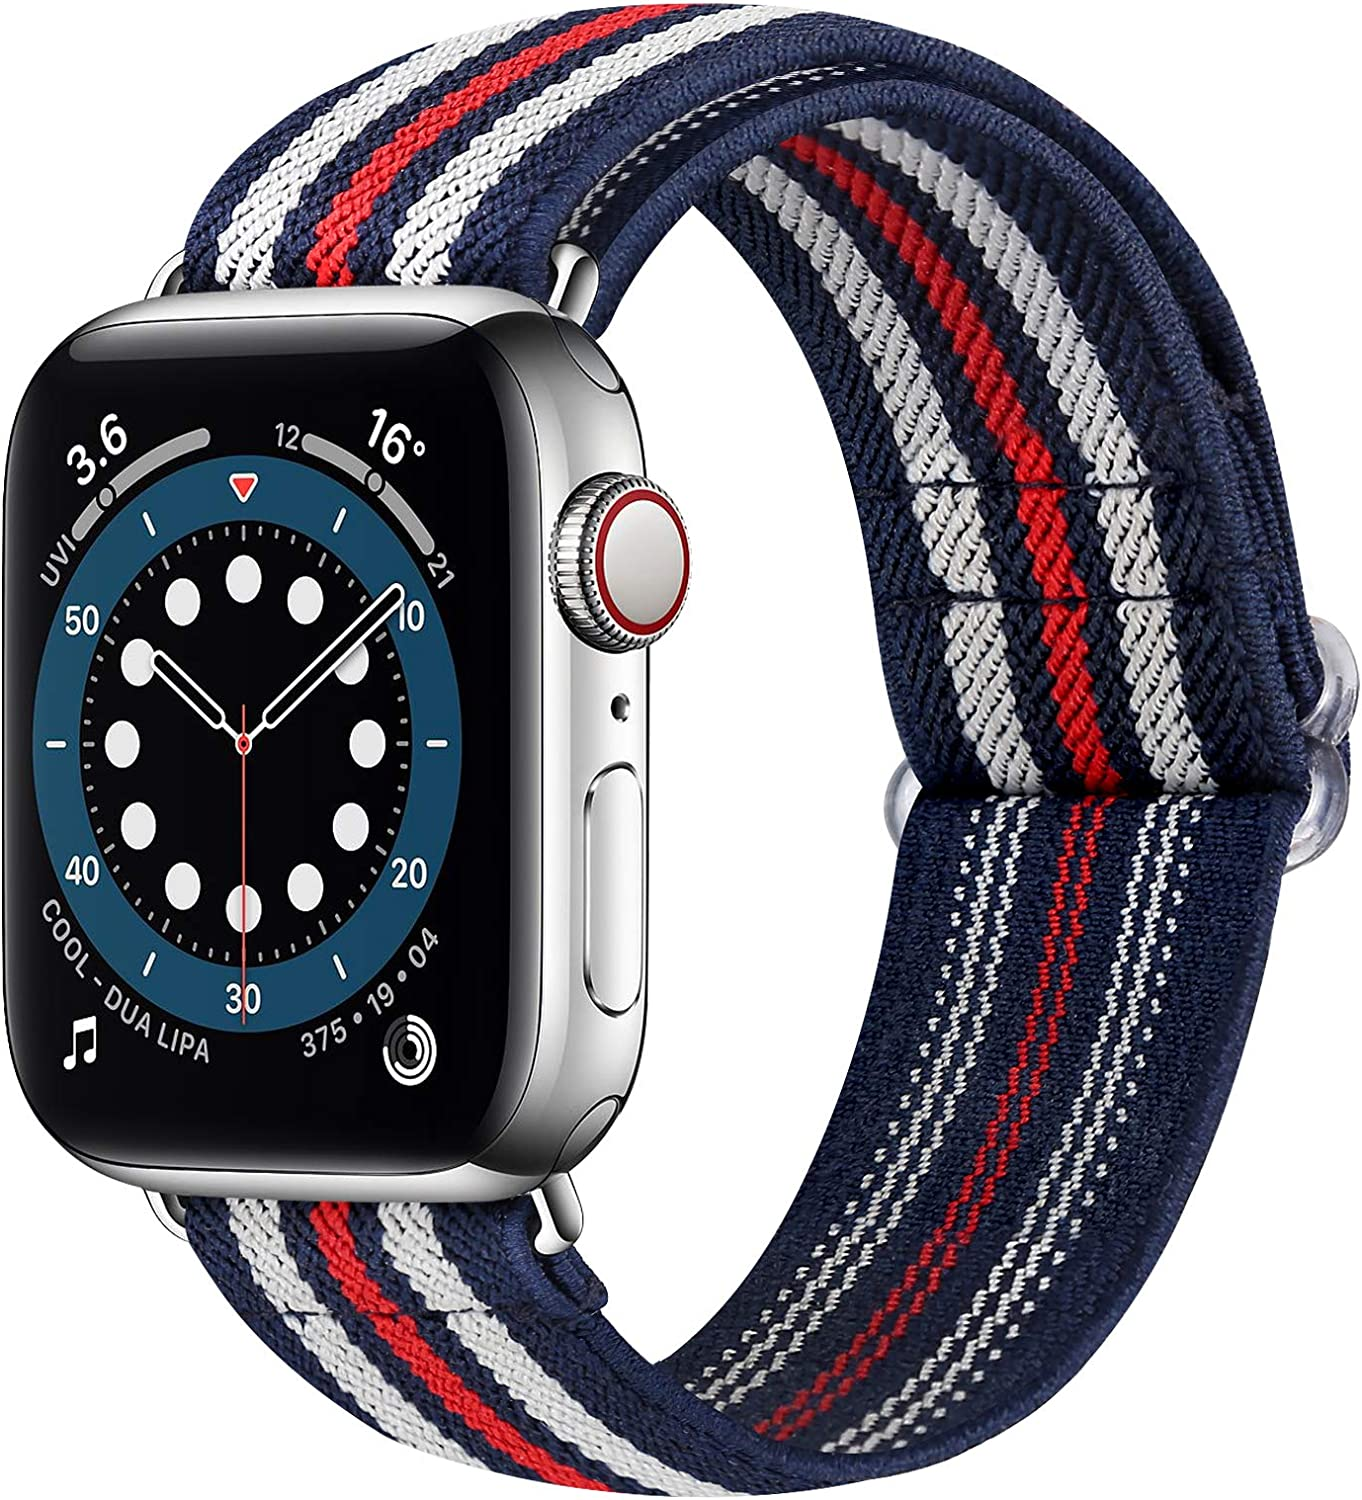 Runostrich Nylon Elastic Watch Band Compatible for Apple Watch 40mm 38mm, Stretchy Adjustable Sport Loop Replacement Strap for iwatch Series 1/2/3/4/5/6/SE